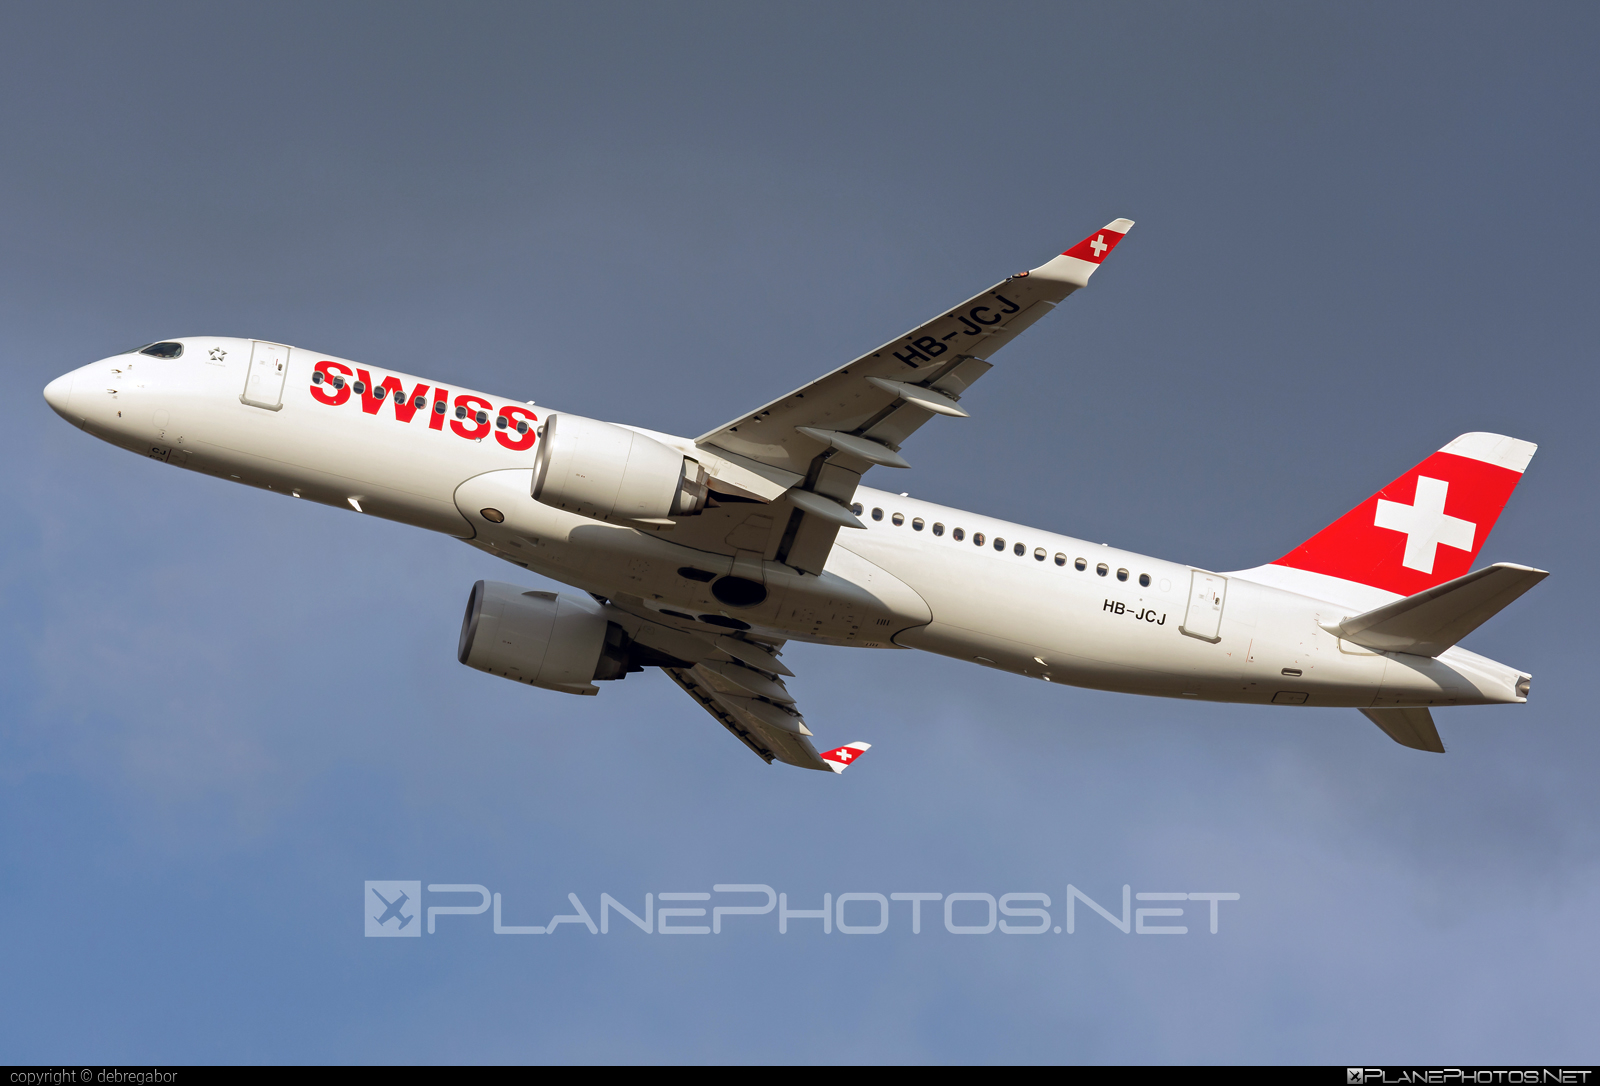 Airbus A220-300 - HB-JCJ operated by Swiss International Air Lines #a220300 #a220family #airbus #cs300 #cseries #cseries300 #swiss #swissairlines